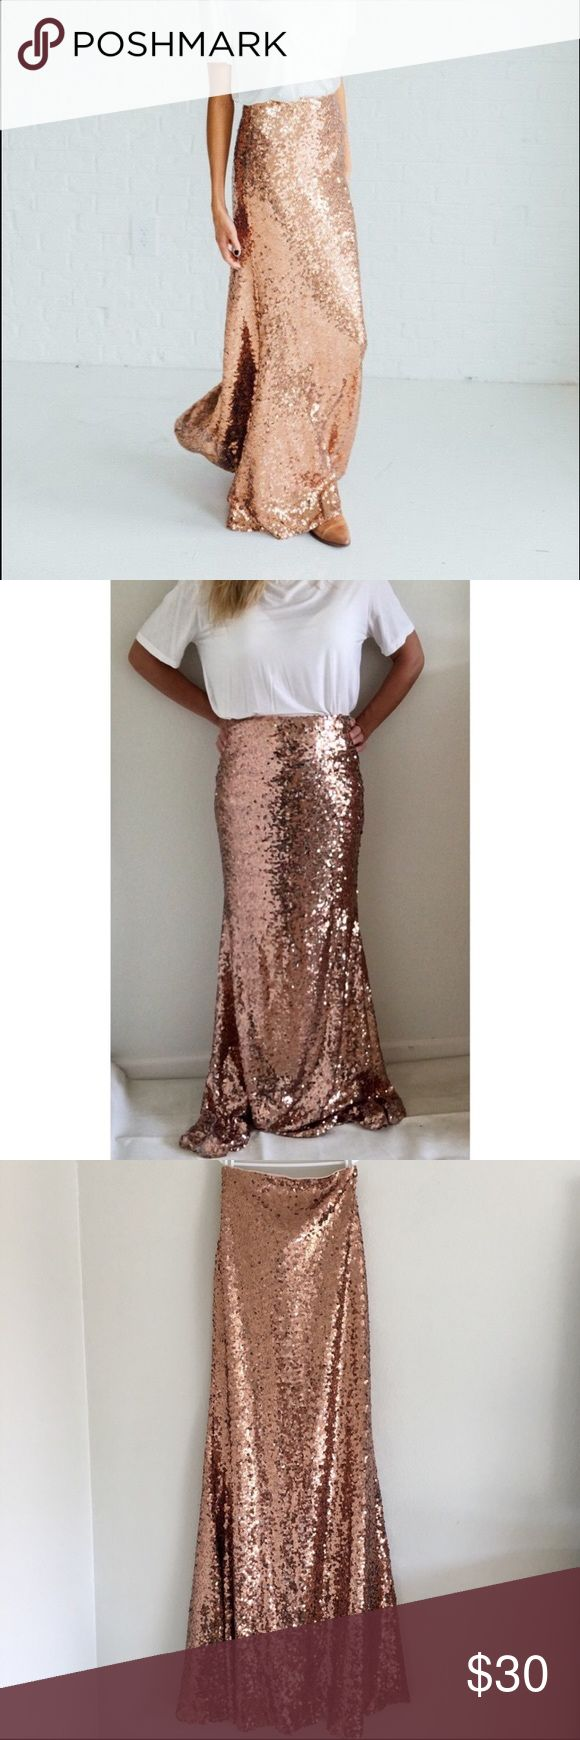 Rose Gold Sequin Maxi Skirt Rose gold sequin maxi skirt from shopmaxwell.com boutique. Color on last photo is off- other photos are more accurate. Skirts Maxi